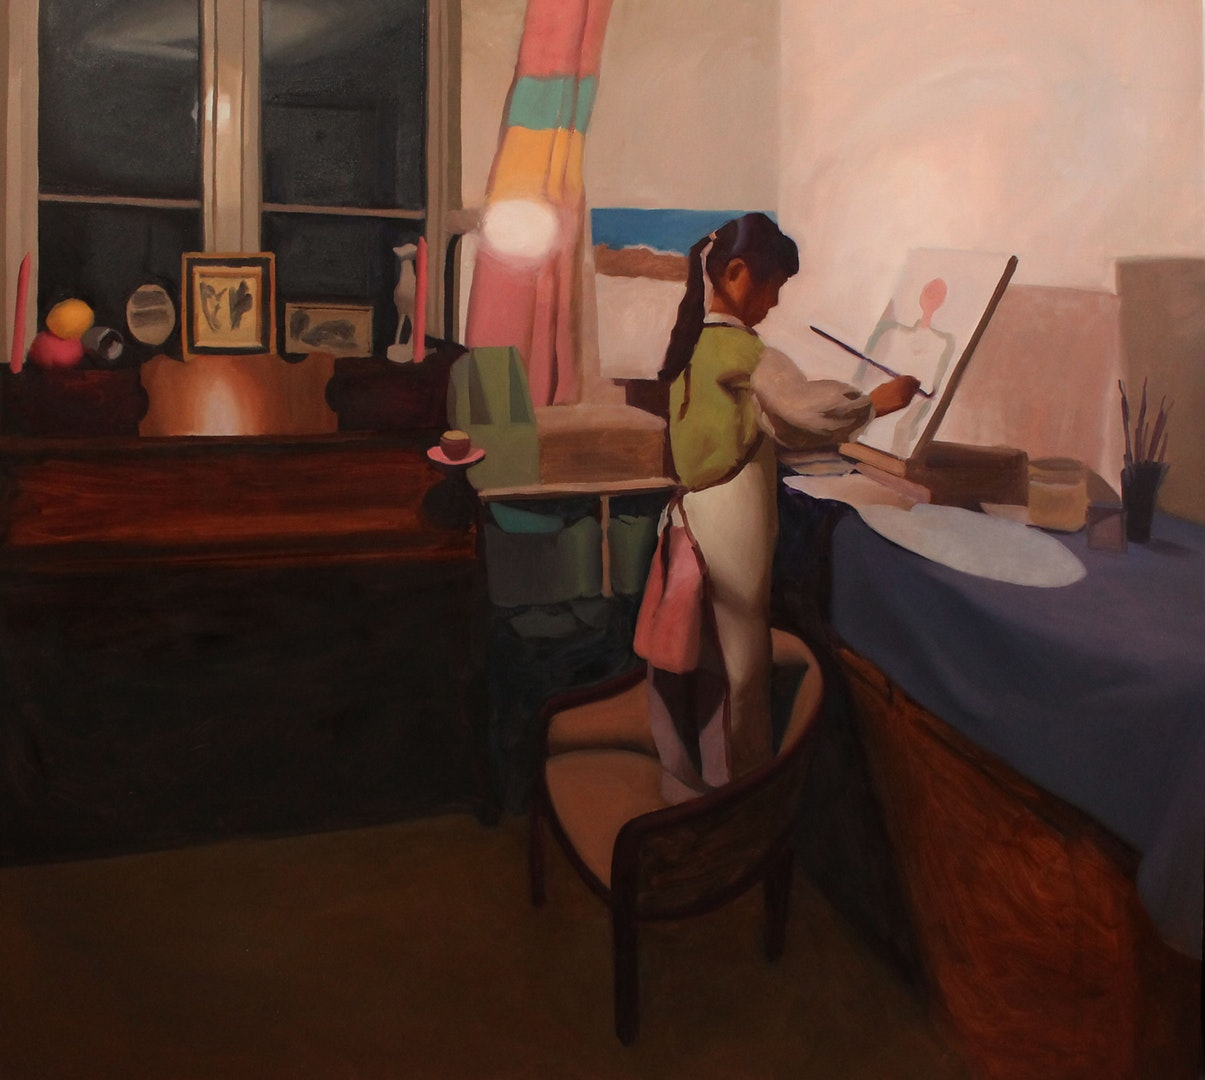 'Isabella painting', Helen Perkins, Oil on canvas, 110 x 150 x 3 cm